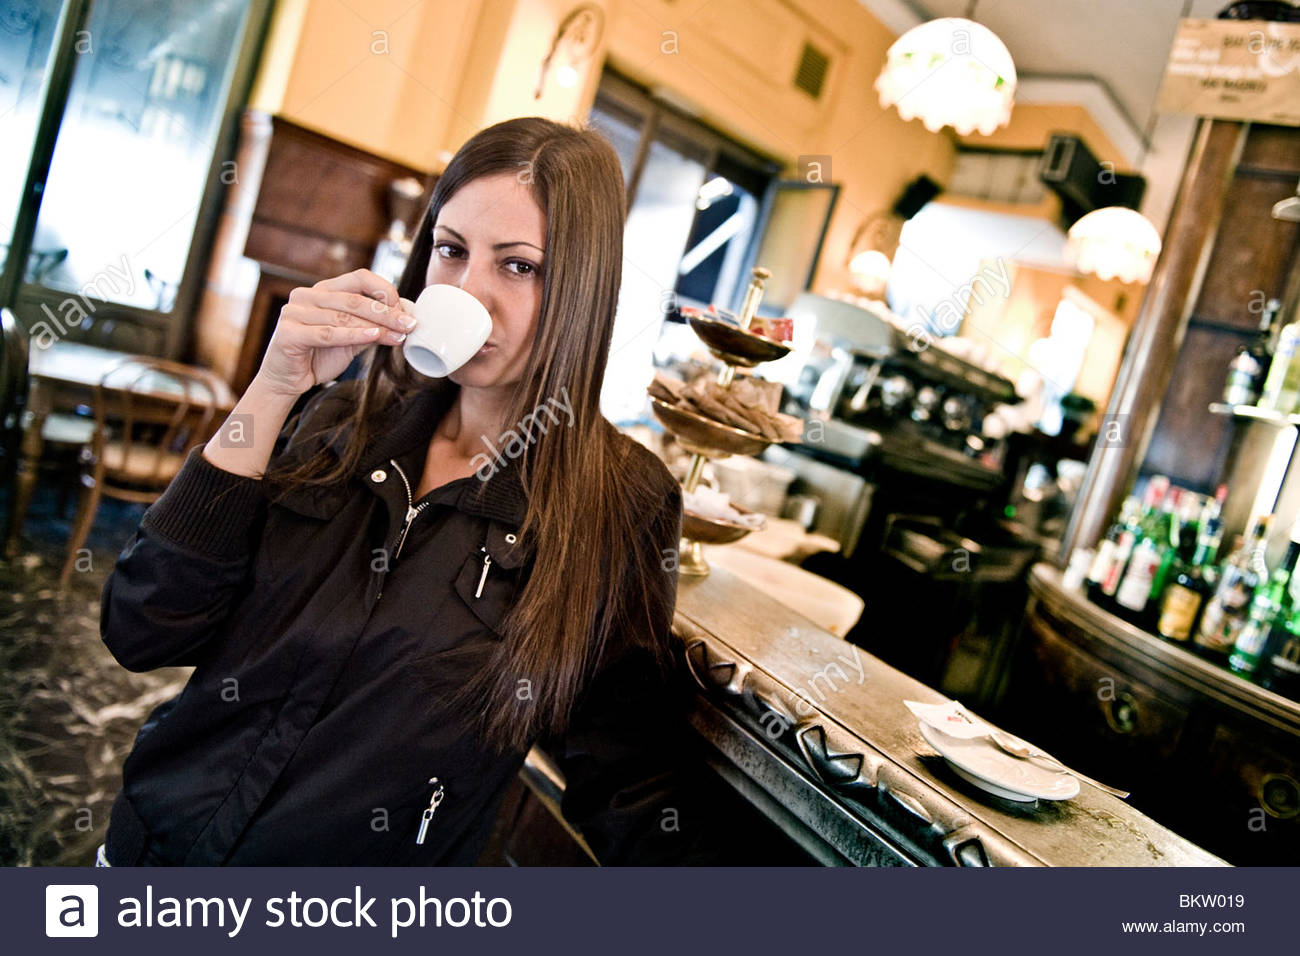 woman drinking a coffee at the bar - Stock Image